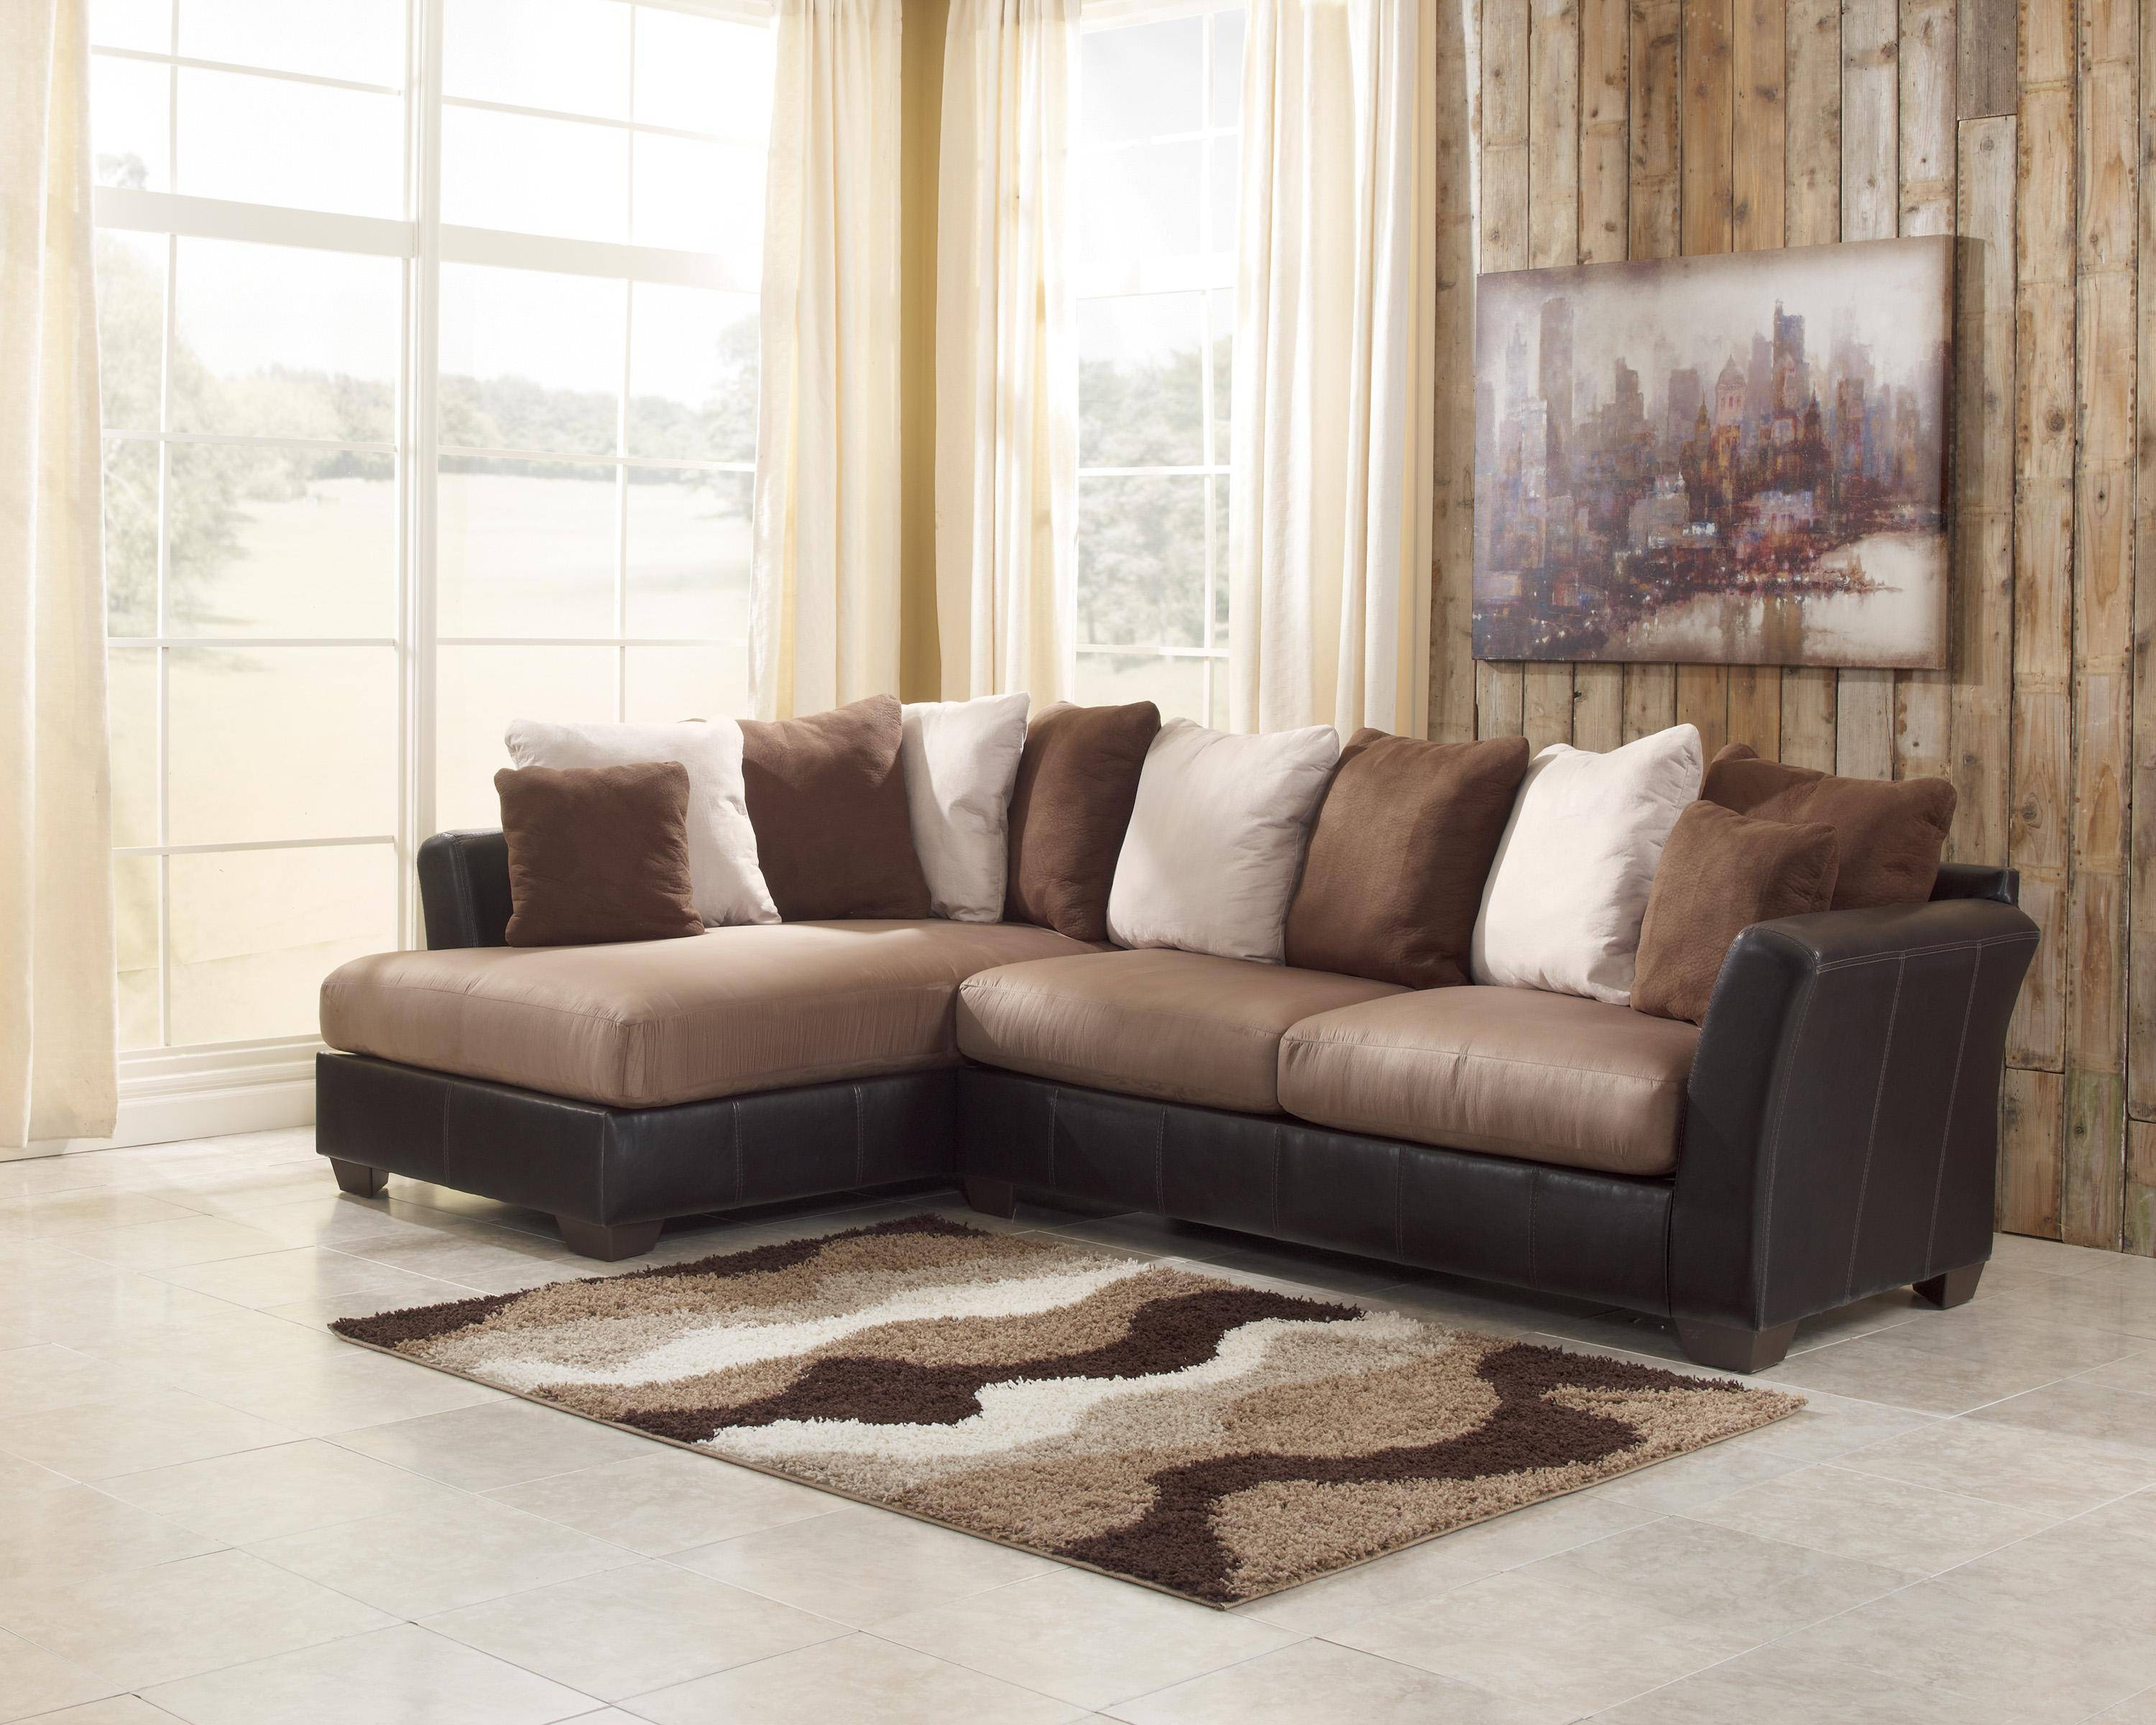 Two Piece Sectional Sofa | Tehranmix Decoration throughout Individual Sectional Sofas Pieces (Image 15 of 15)